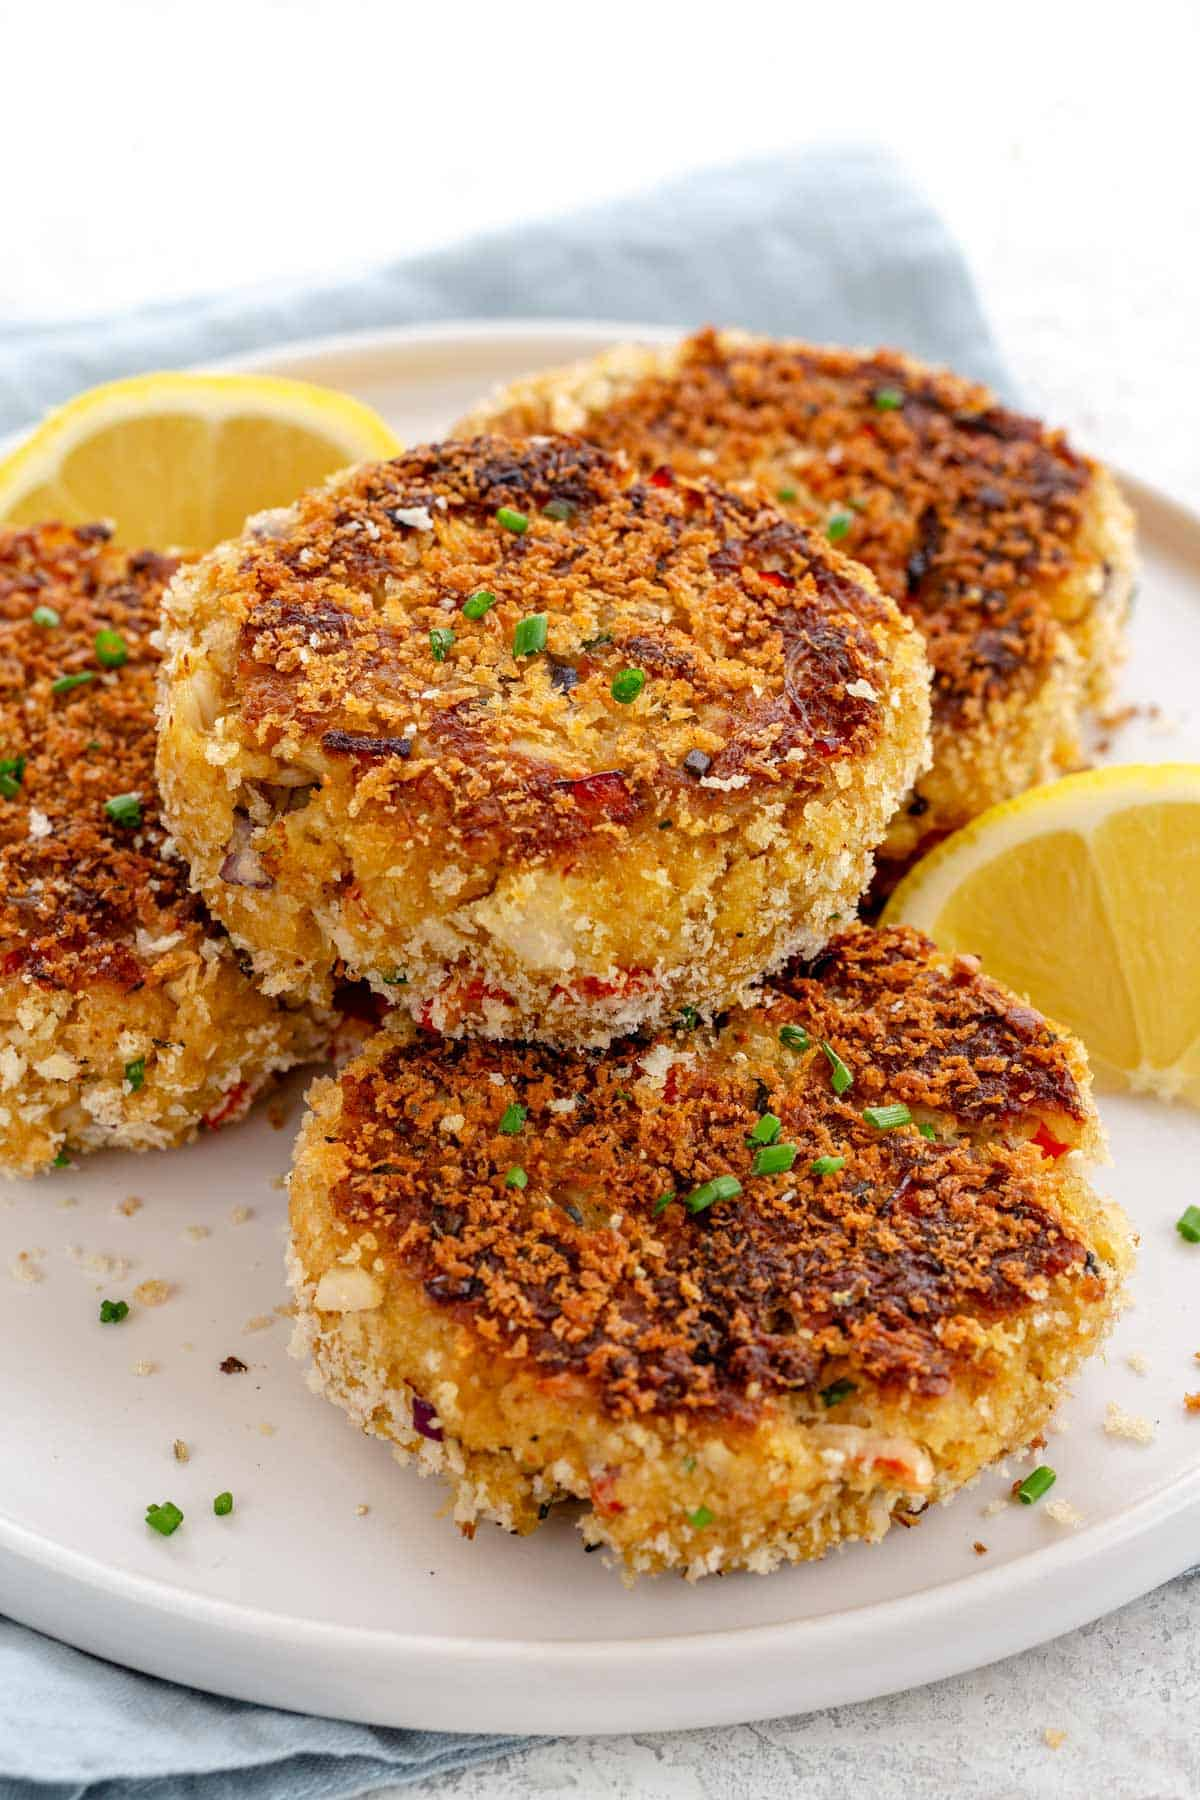 stack of crab cakes with crispy brown surface